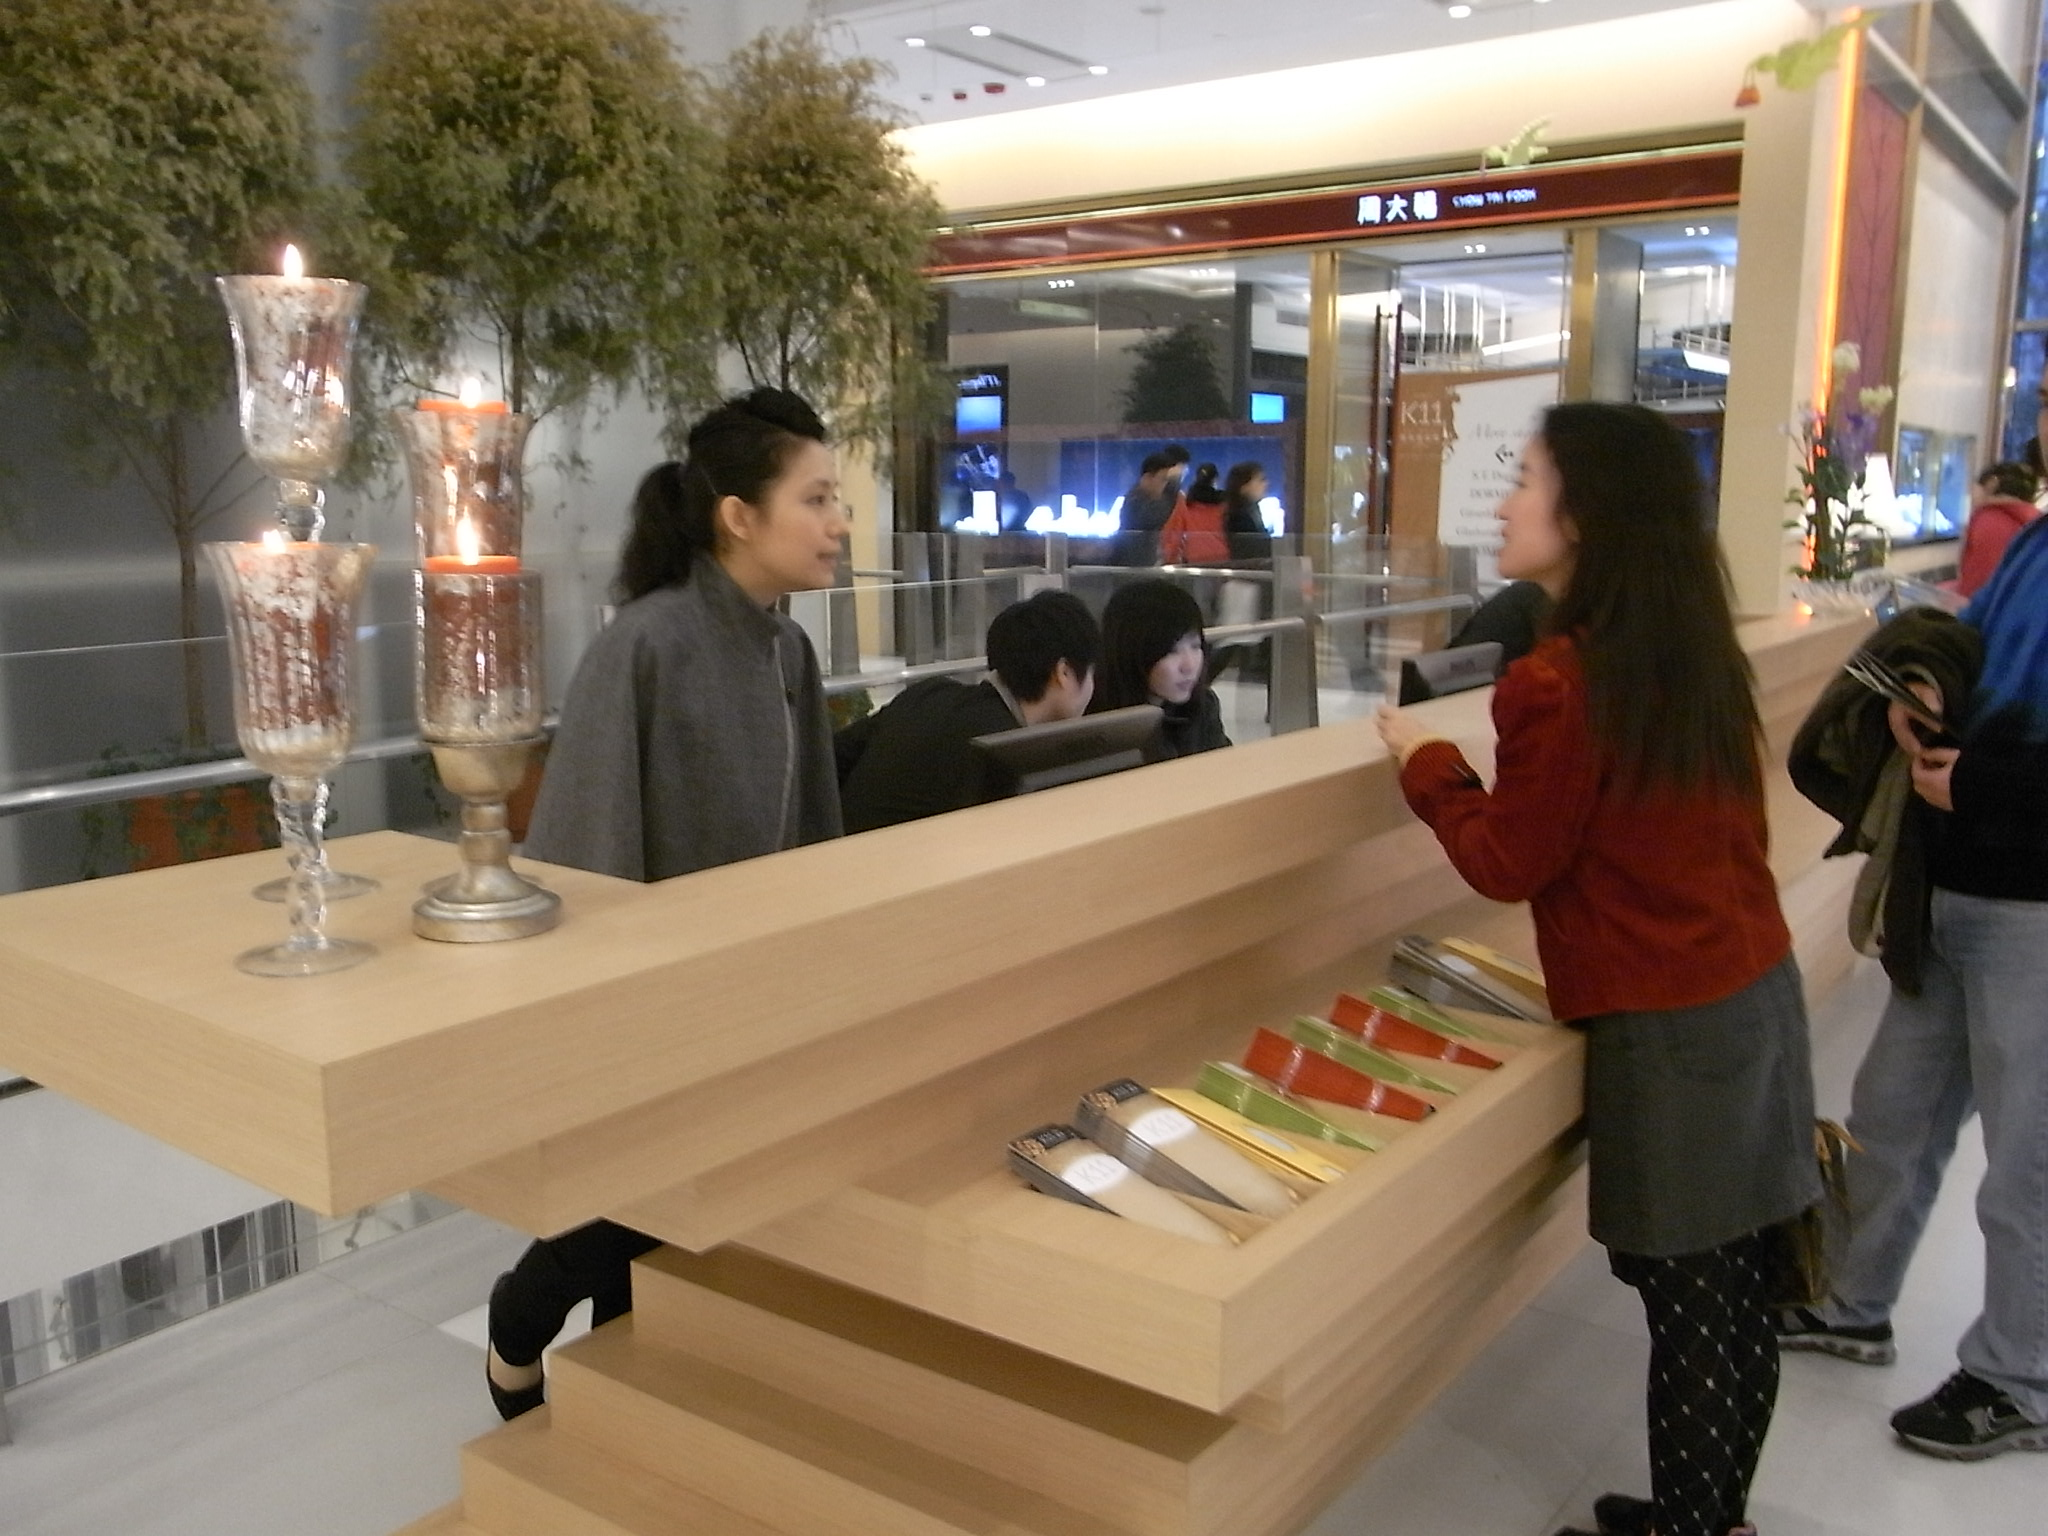 Counter Image : File:HK TST K11 mall 125 Concierge information service counter.JPG